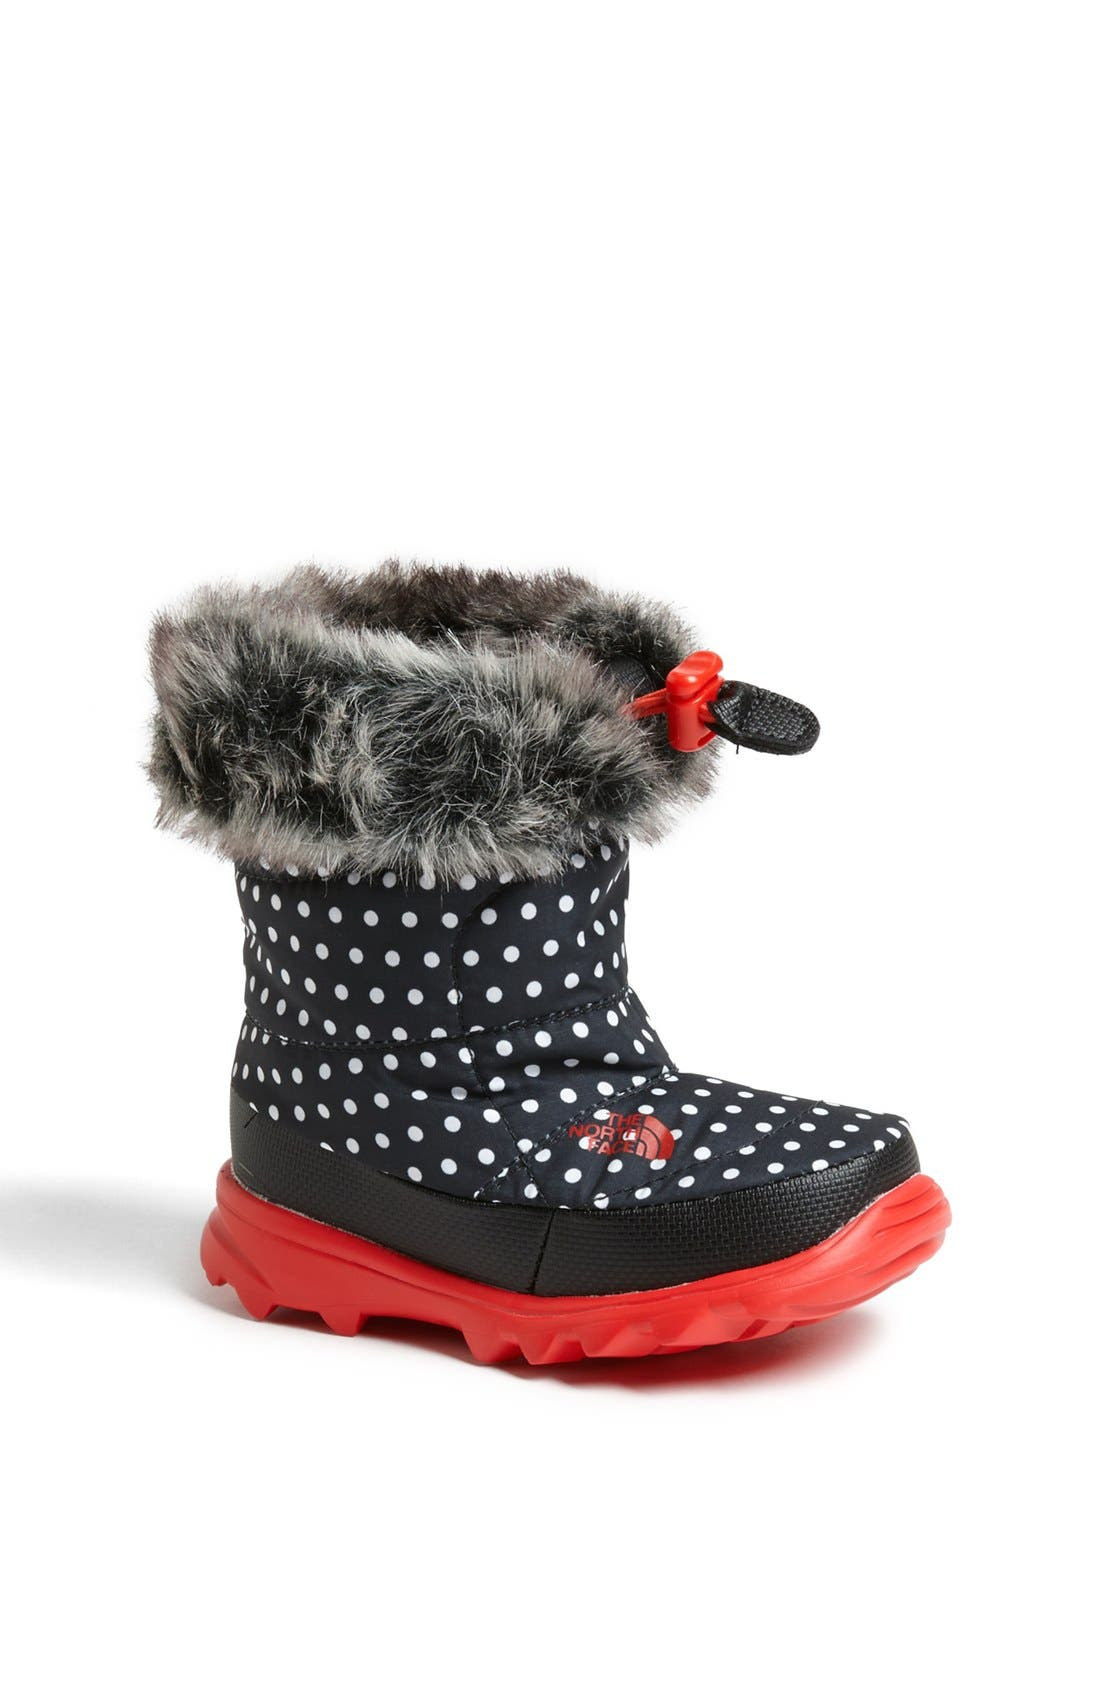 Main Image - The North Face 'Nuptse Fur II' Winter Boot (Walker & Toddler)